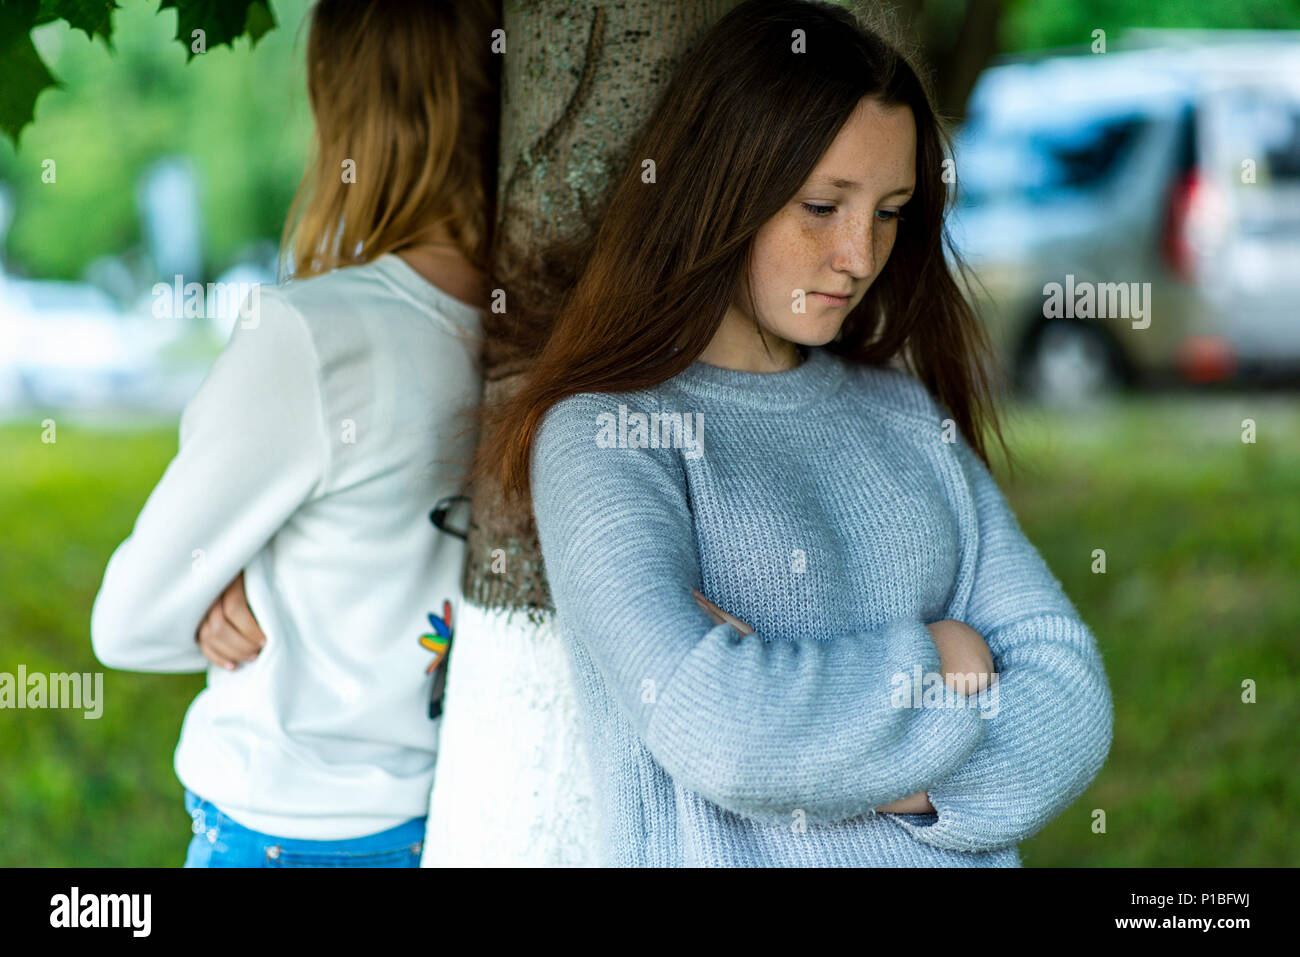 Two girlfriends in the summer in a park in nature. Offended each other. Friends quarreled. Negative among the girls. Problems in the relationship. Dissatisfaction with each other. Stand near a tree. - Stock Image